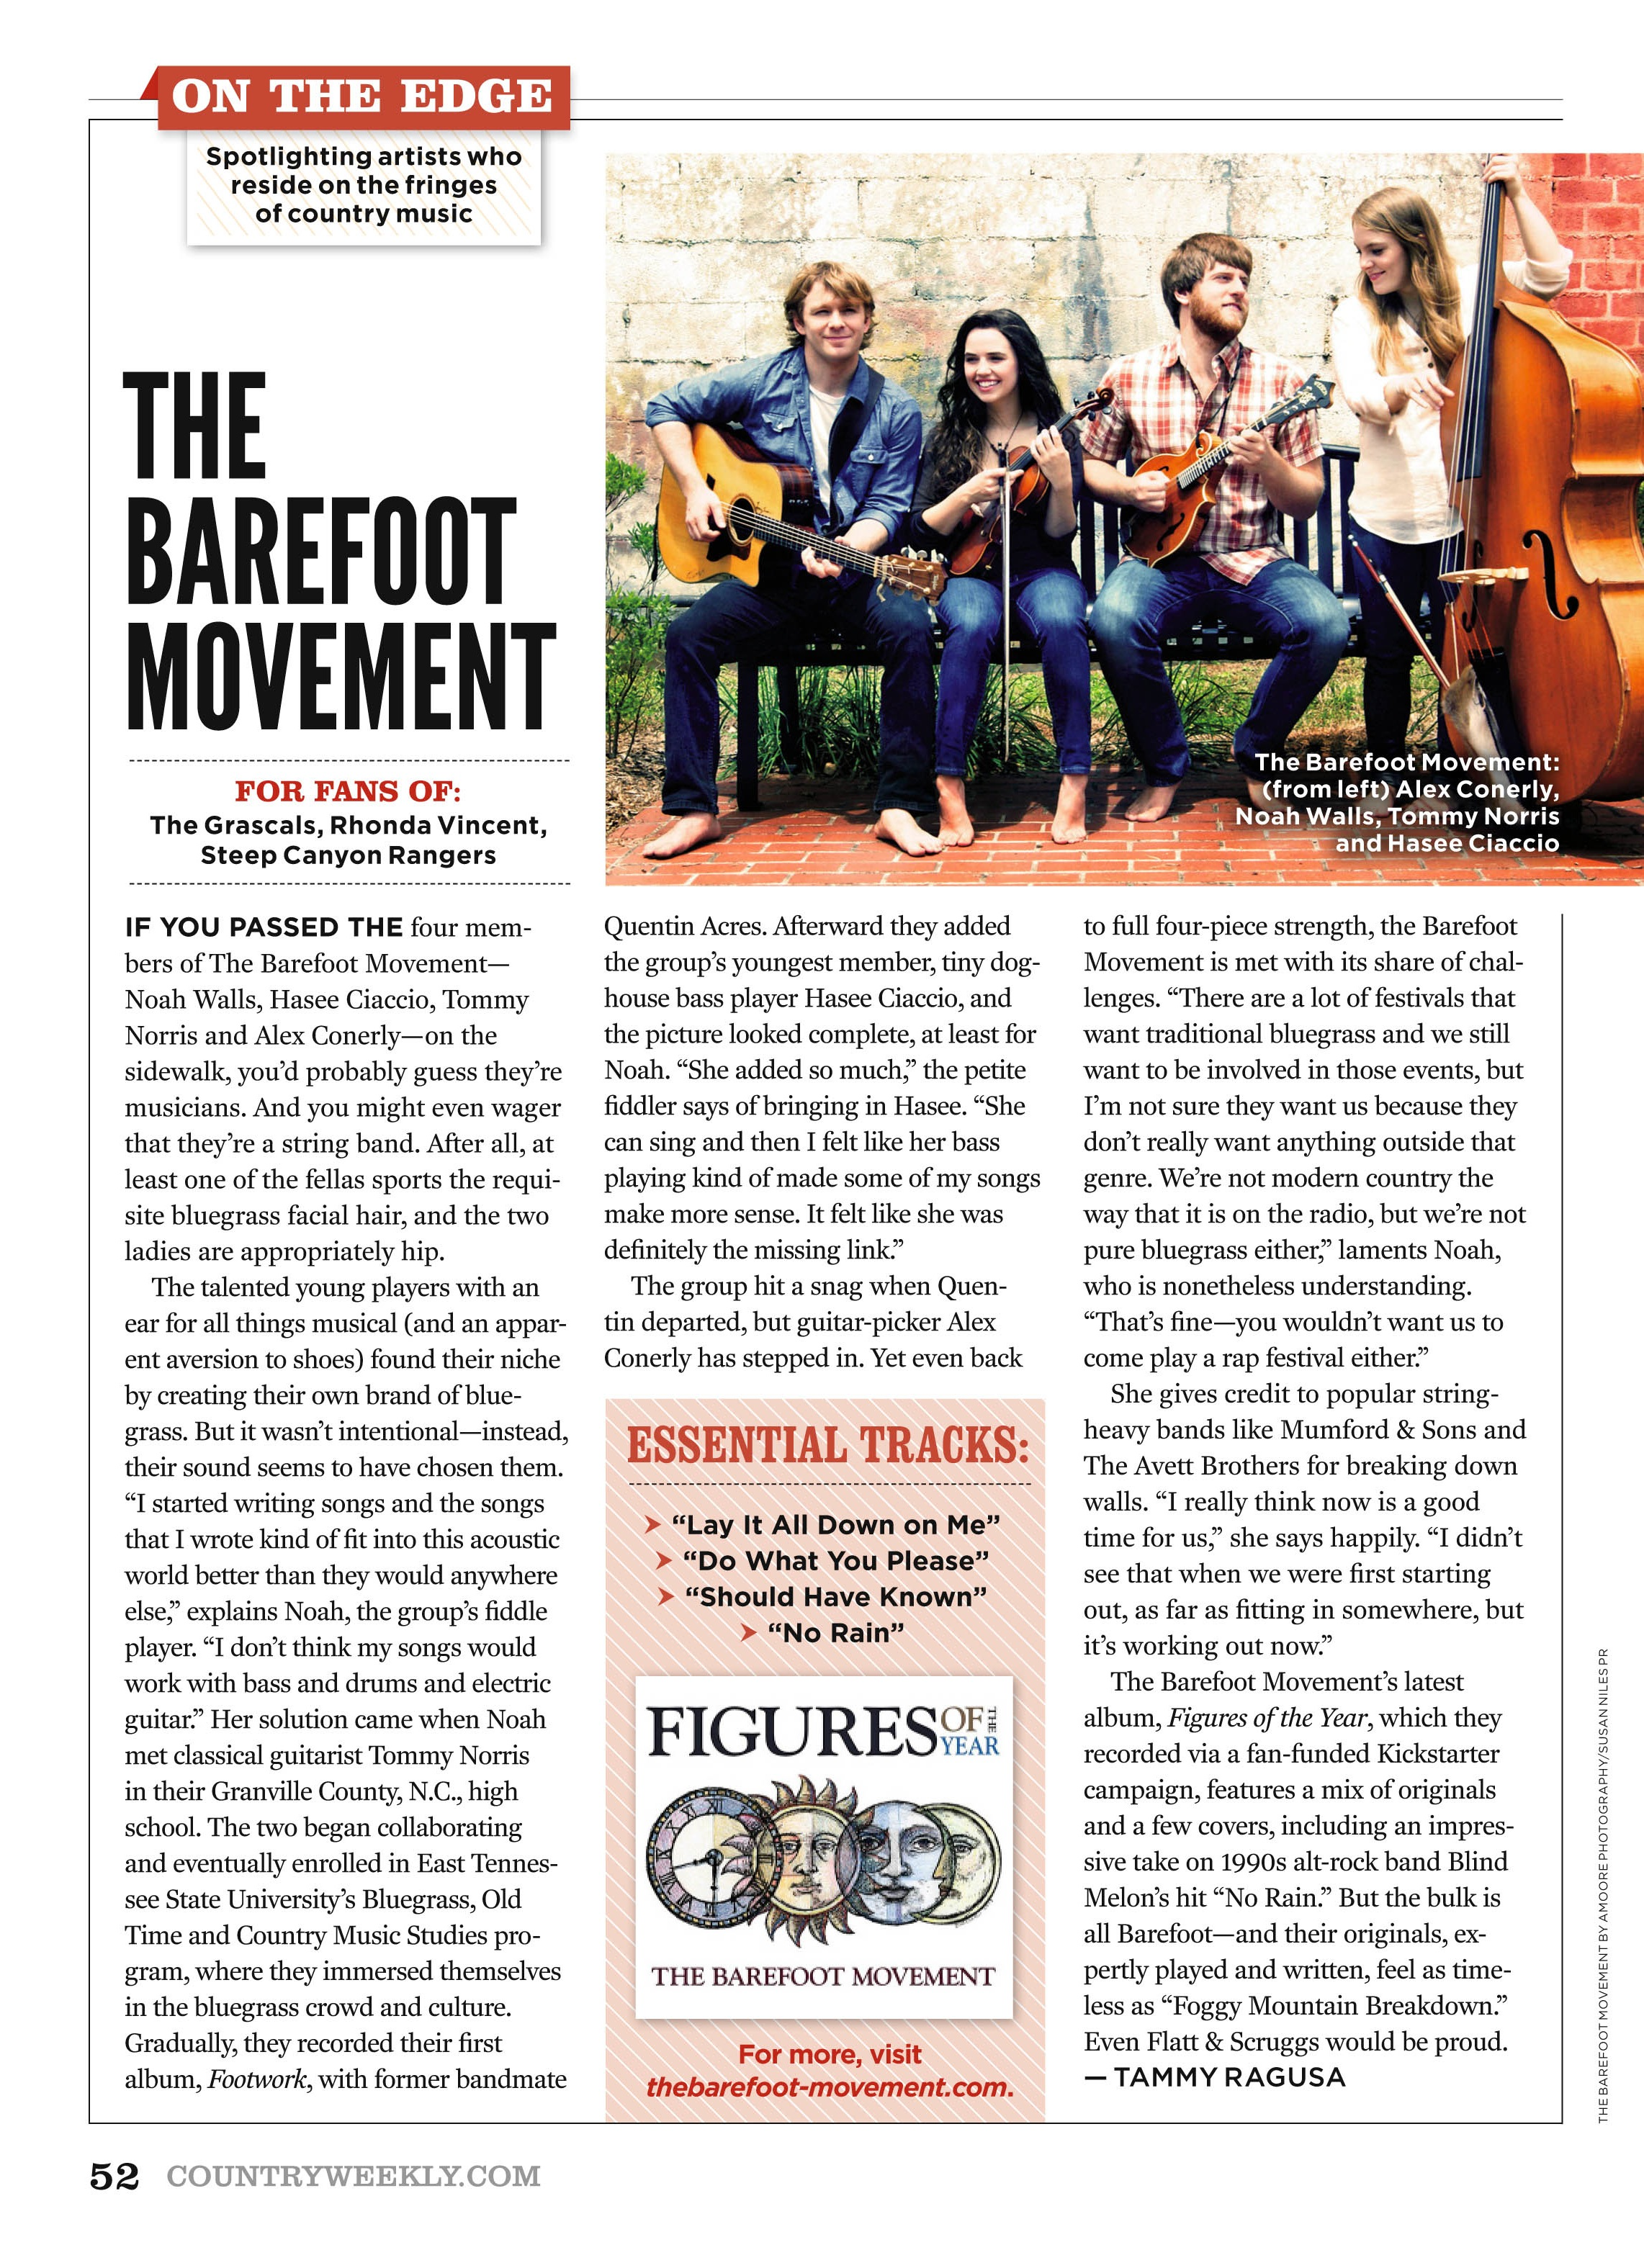 The Barefoot Movement has been featured in the national publication,   Country Weekly